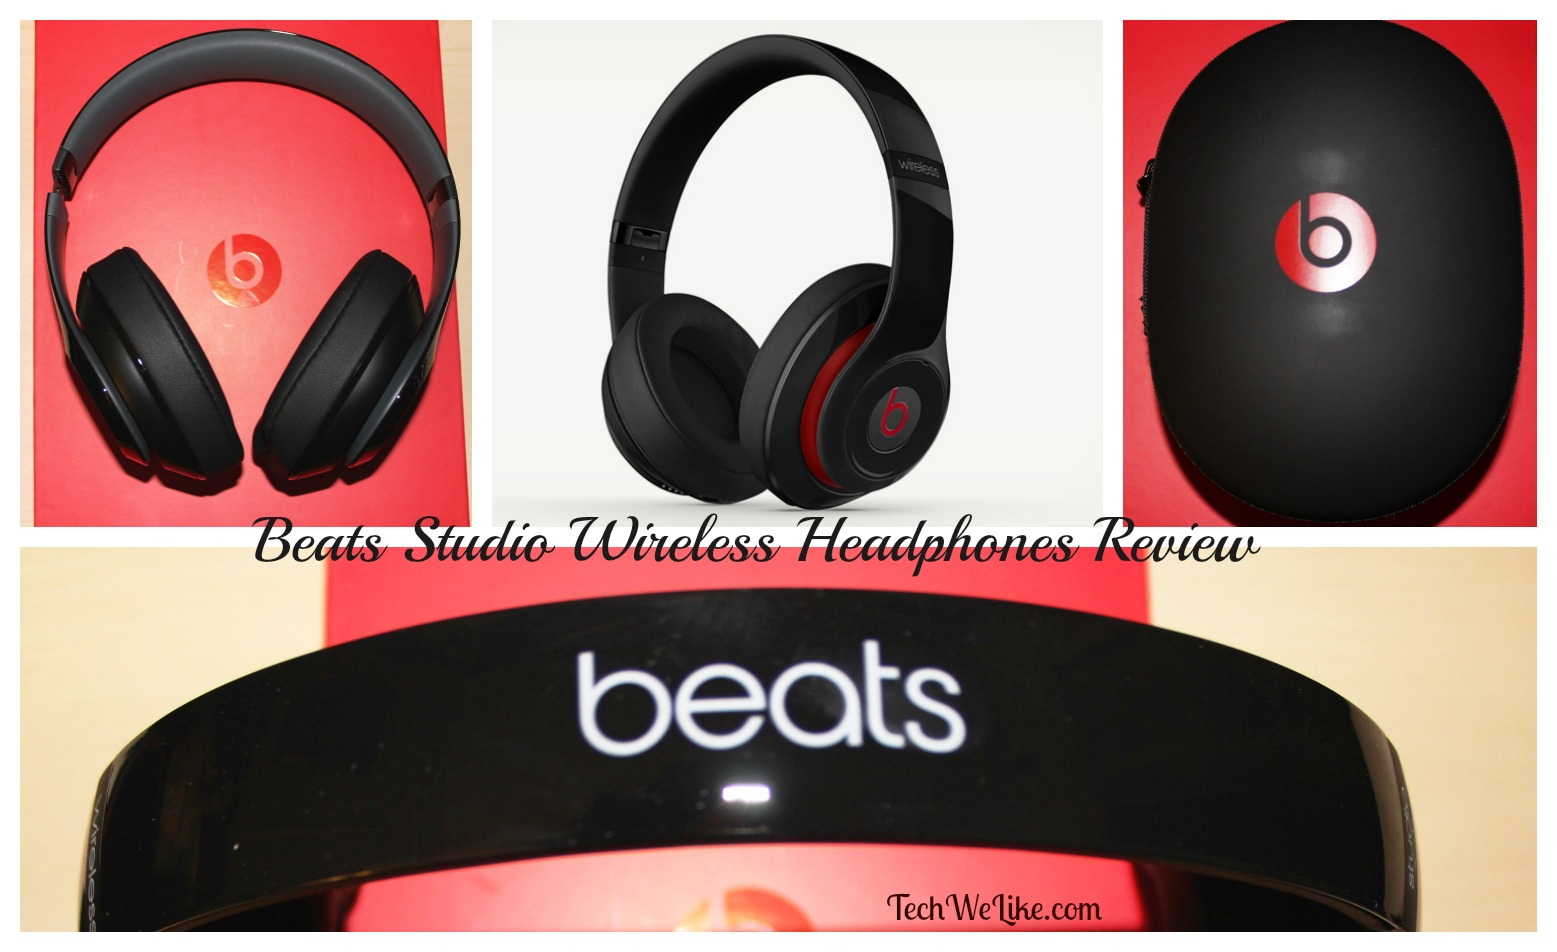 Beats Studio Wireless Headphones Review - Beats by Dre - Tech We Like - Cruz